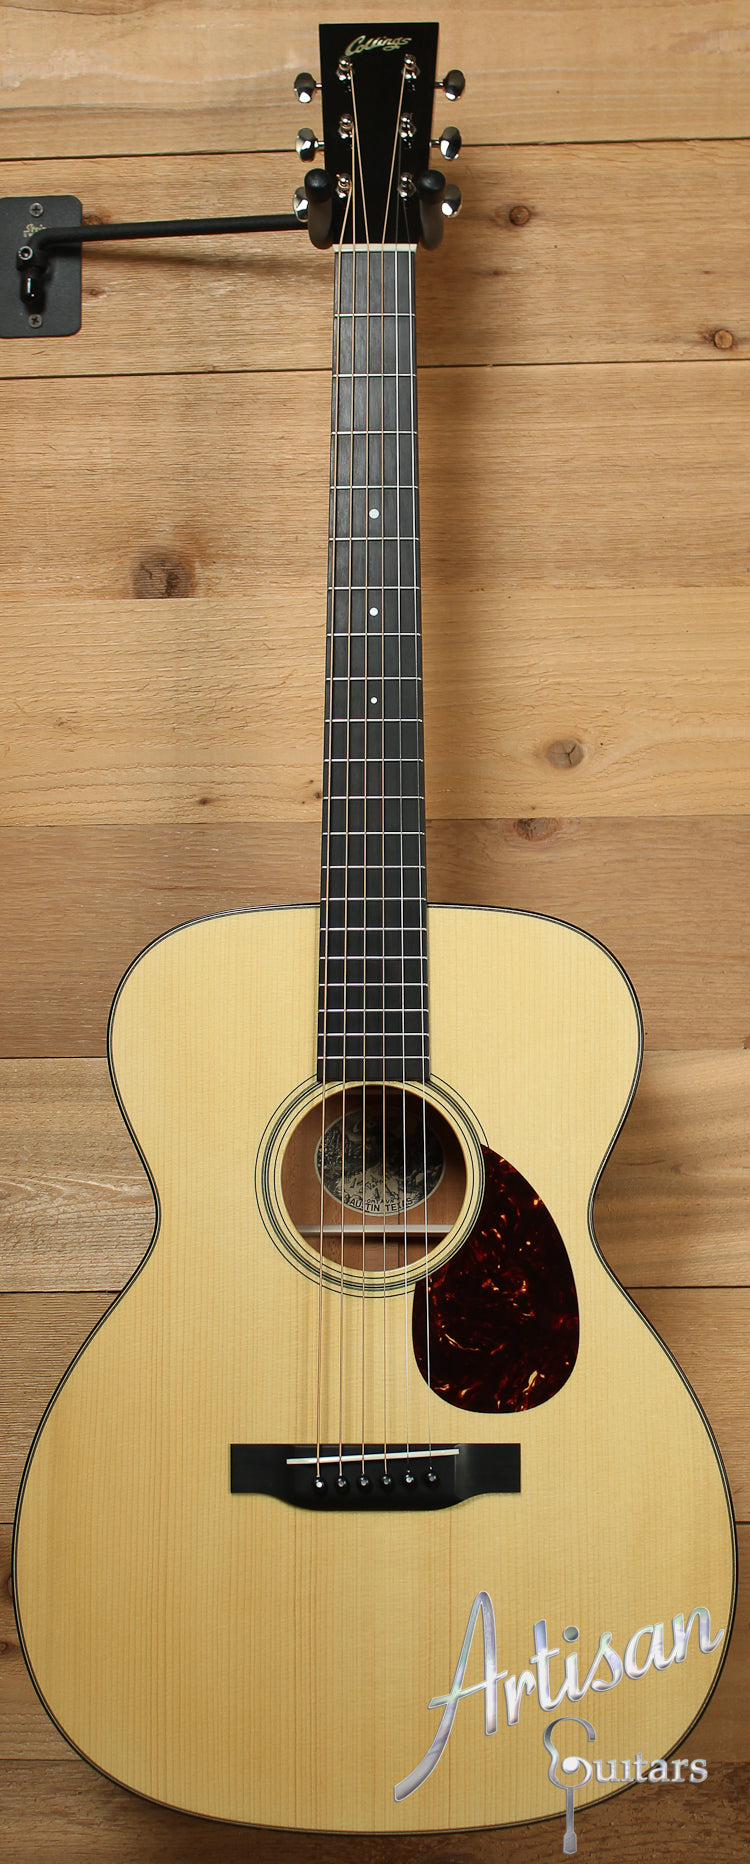 Collings OM1 A VN Custom Adirondack Spruce and Mahogany with Adirondack Braces and Varnish Finish ID-7789 - Artisan Guitars